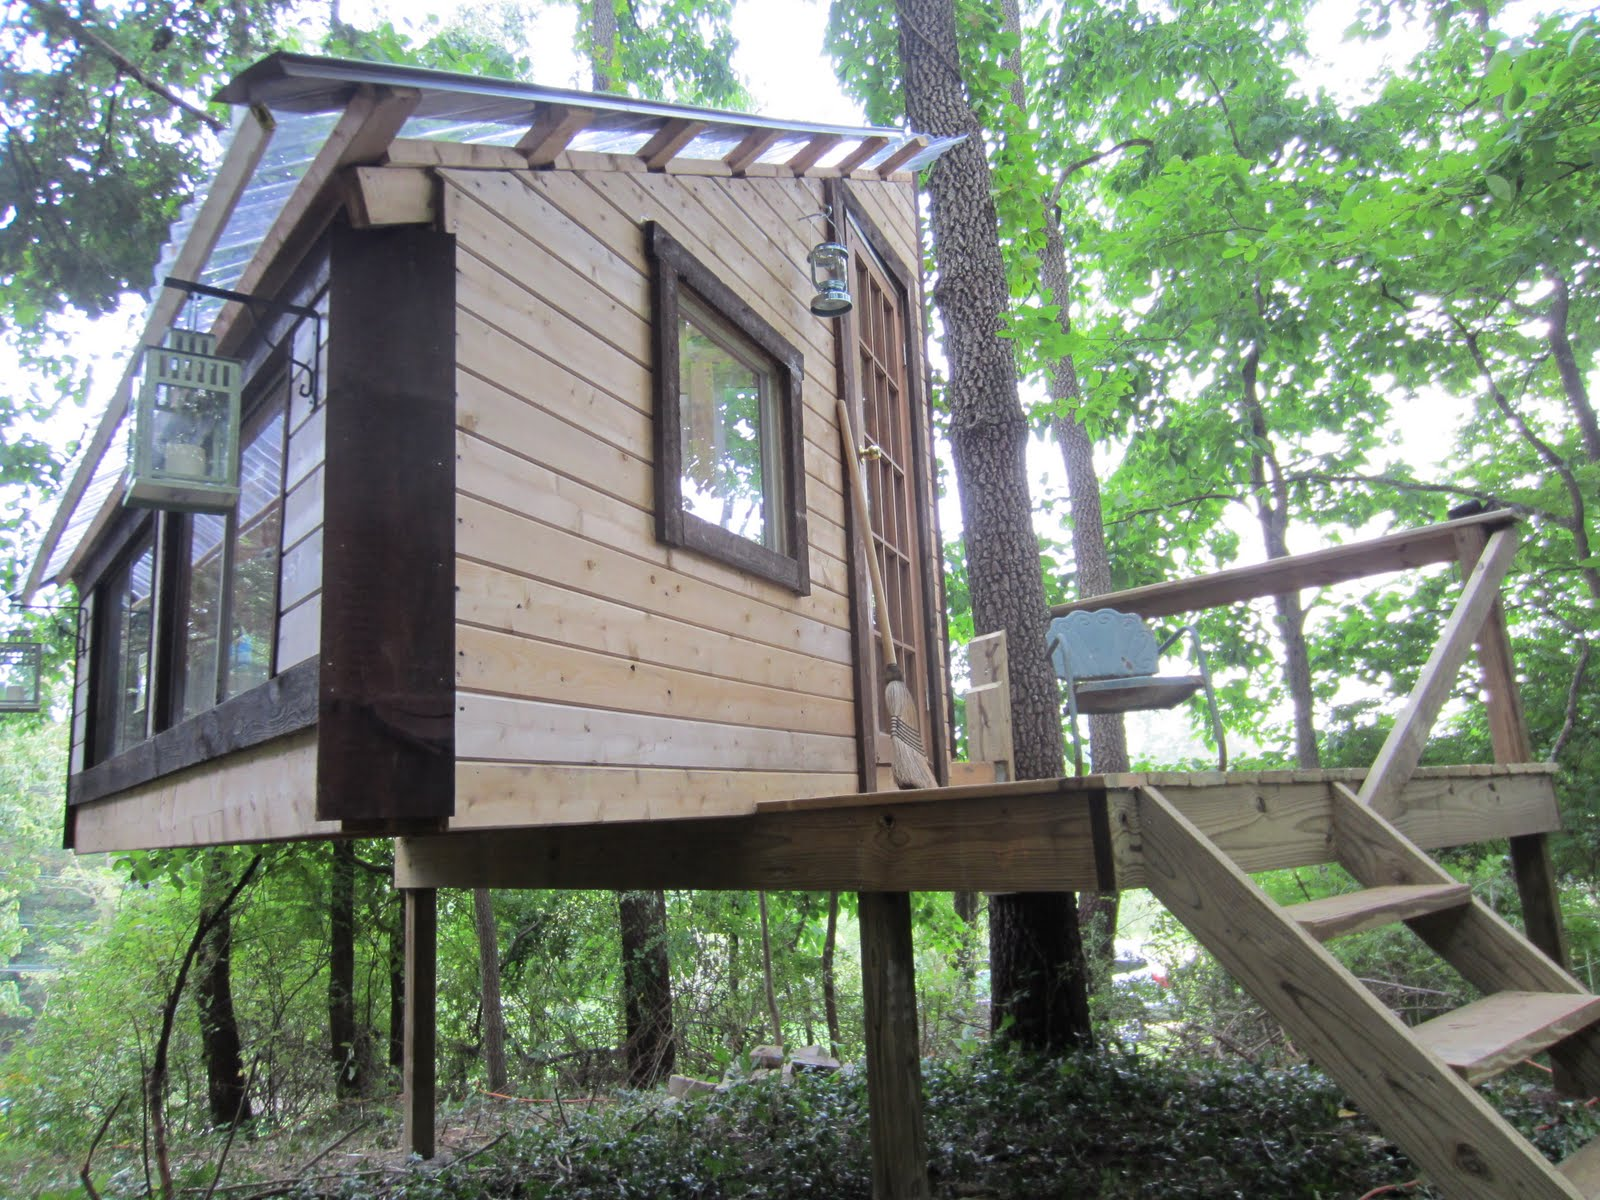 Simple tree house designs and plans viewing gallery - Treehouse plans and designs ...